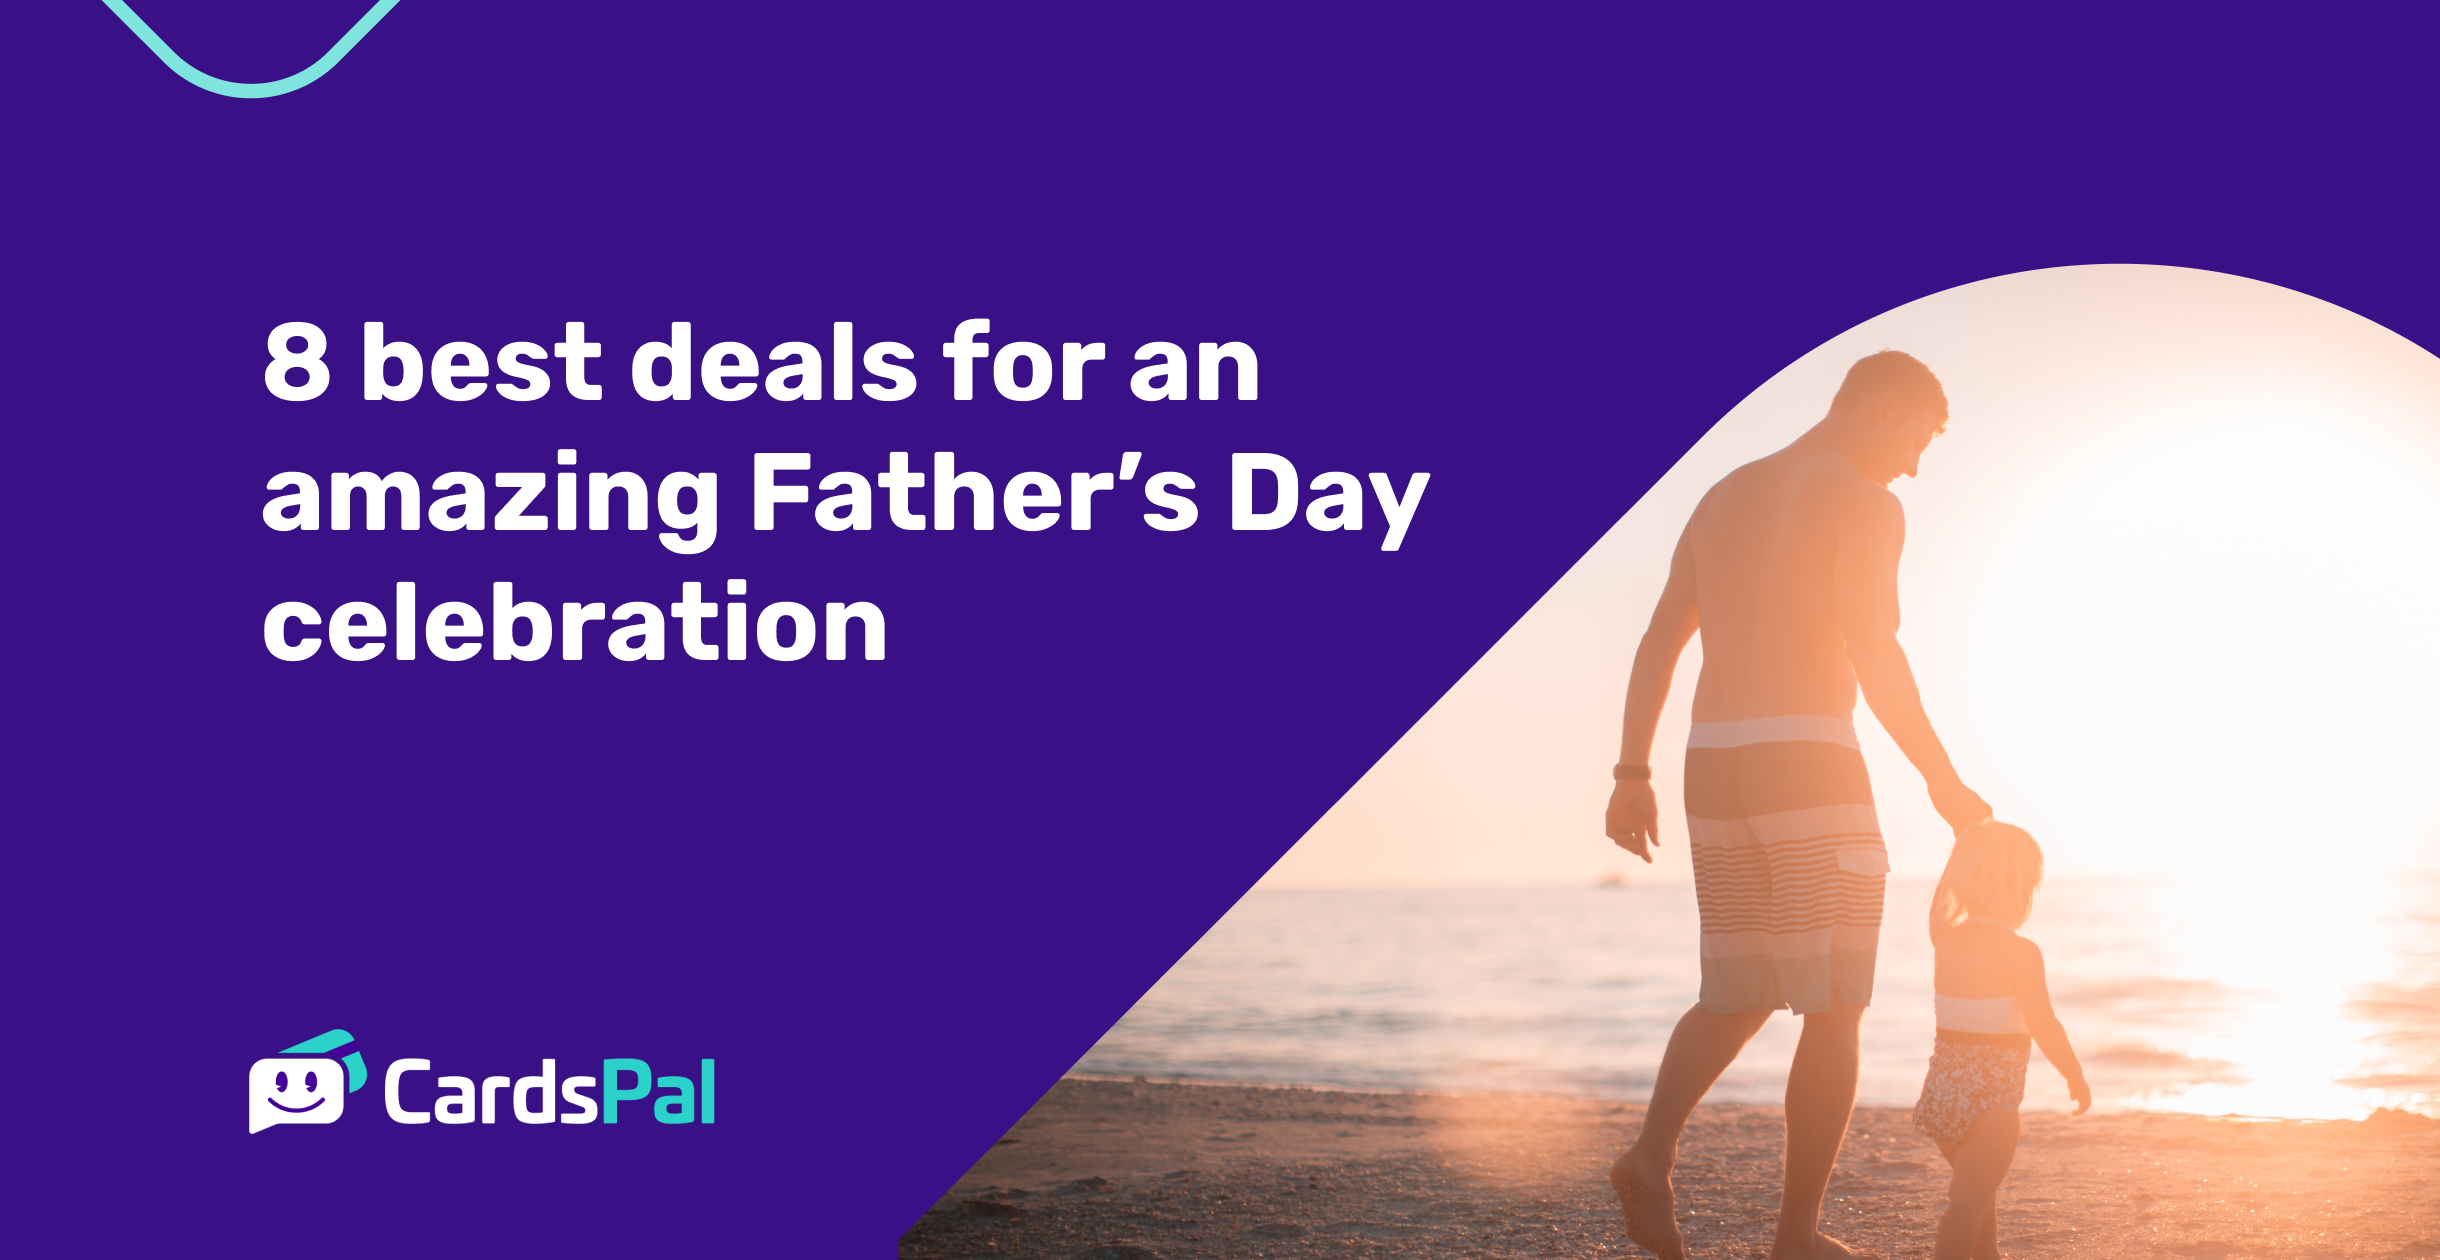 8 best deals for an amazing Father's Day celebration